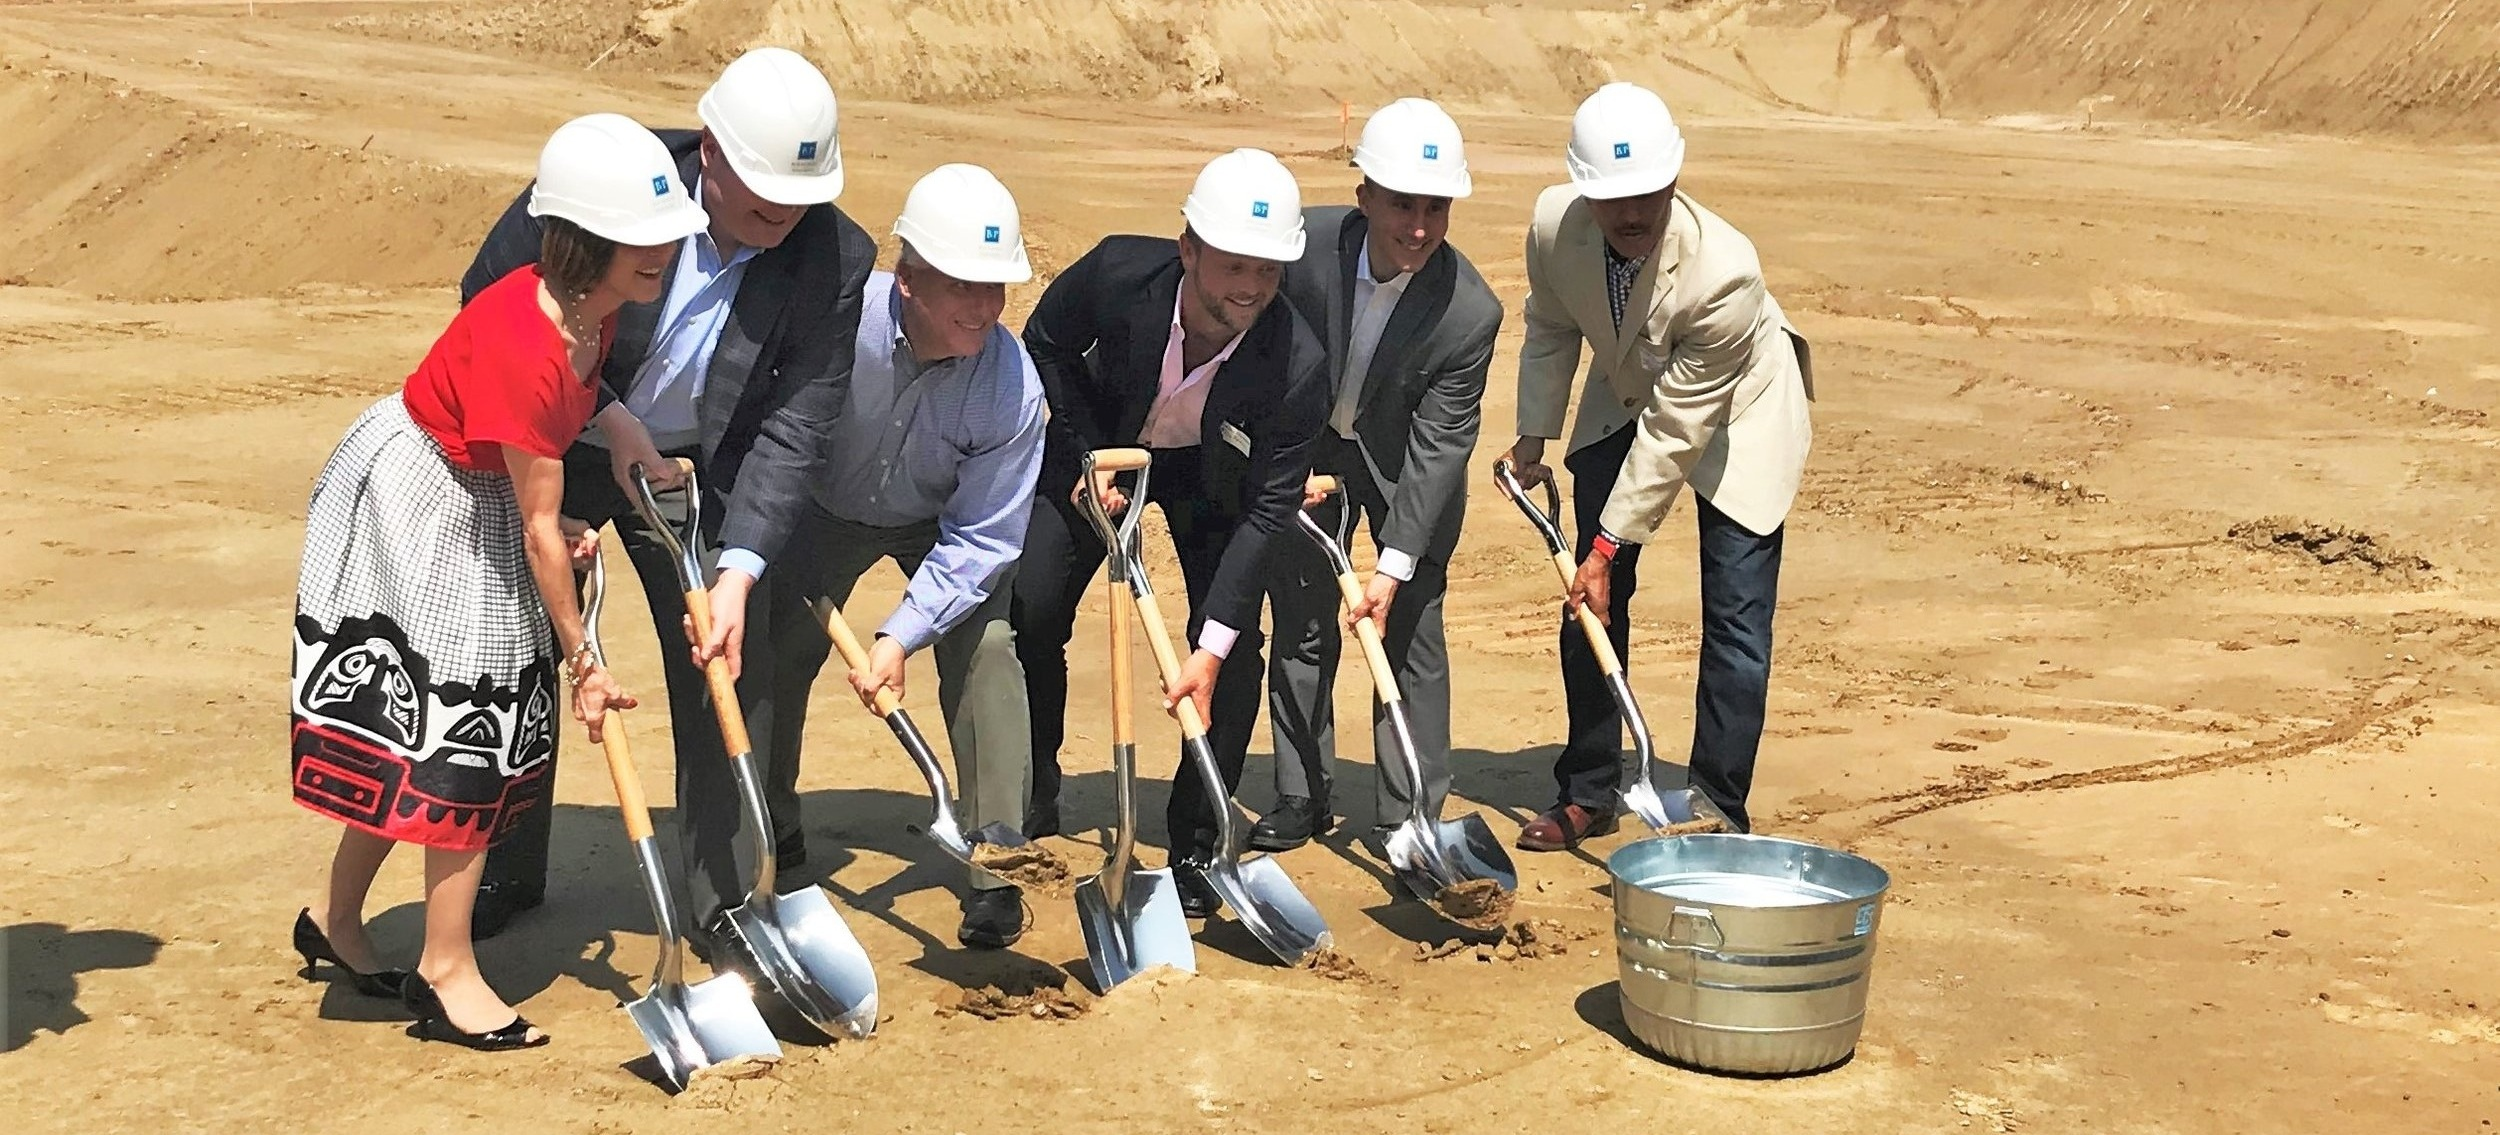 Buchanan Partners dug their shovels into the dirt at the Atelier Apartments project site in Silver Spring, Maryland